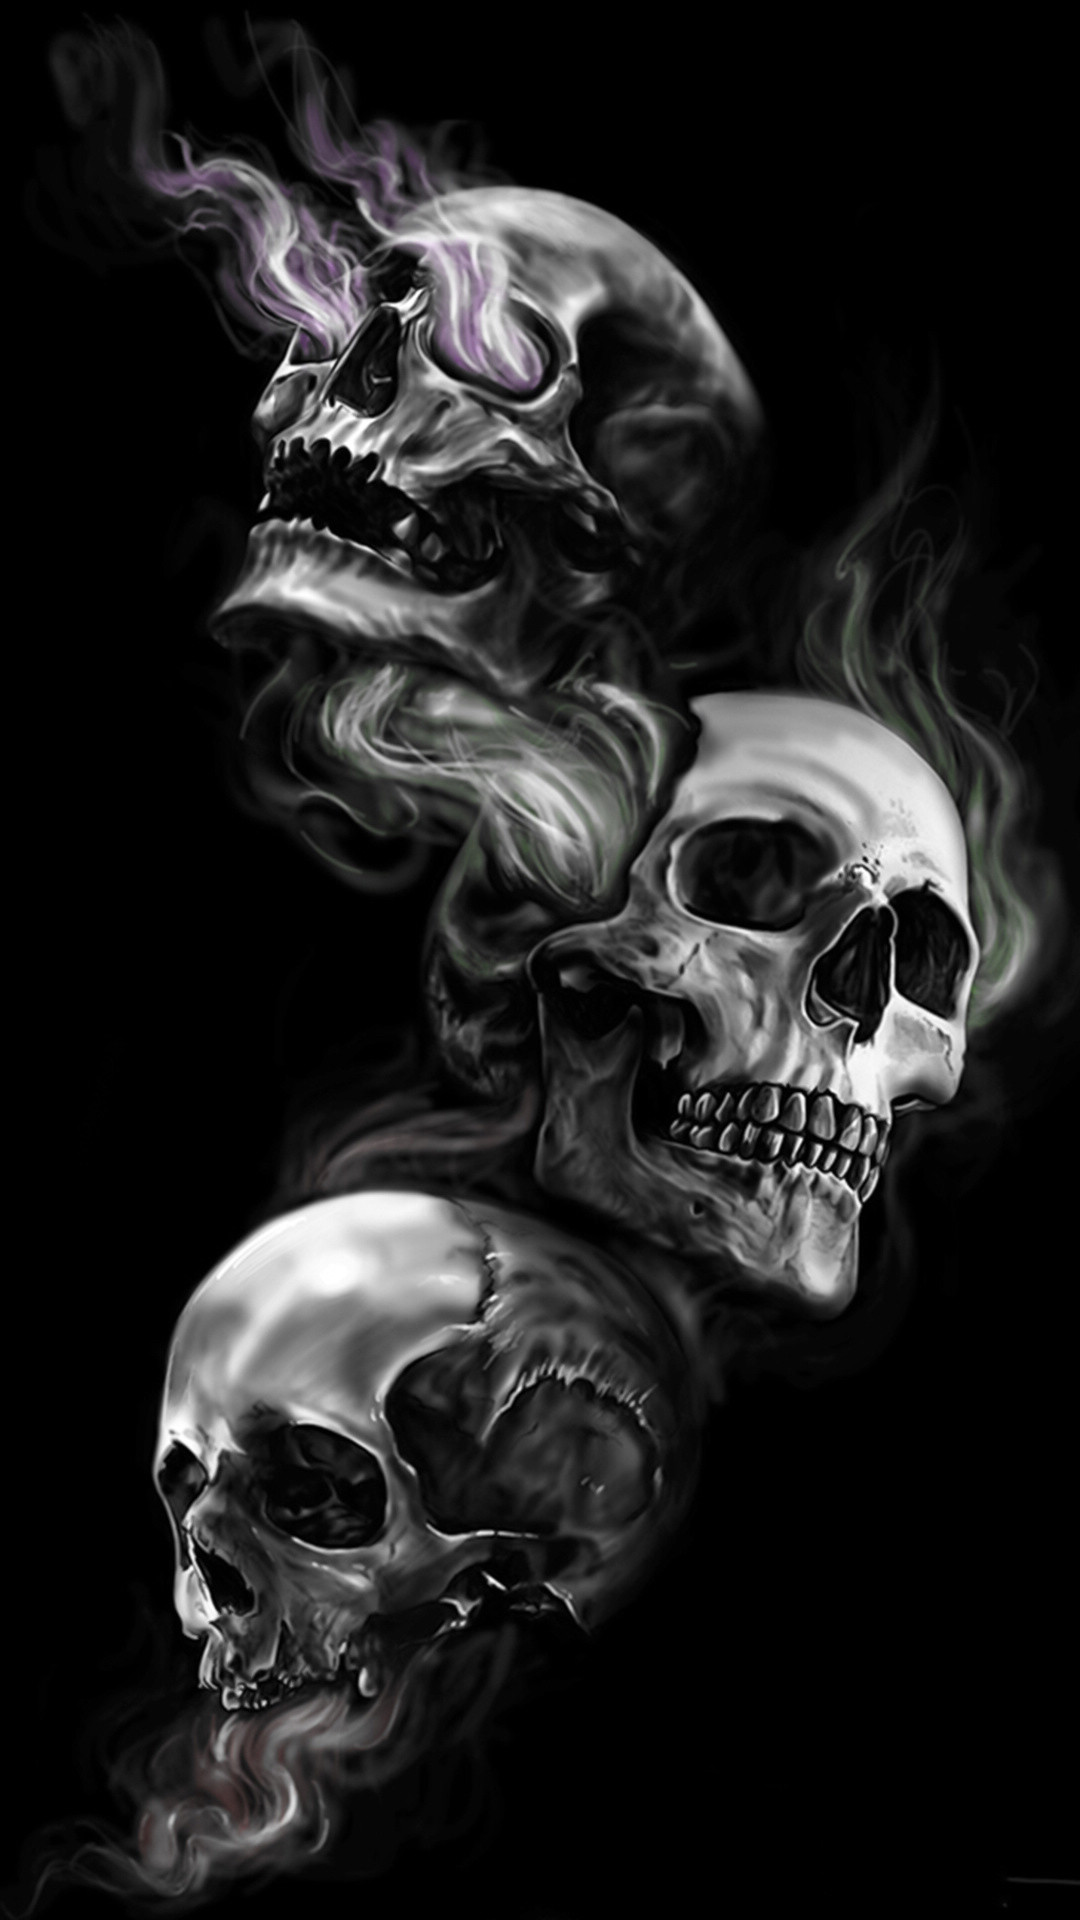 … Badass Wallpapers For Android 04 0f 40 Three Skulls on Dark Black  Background